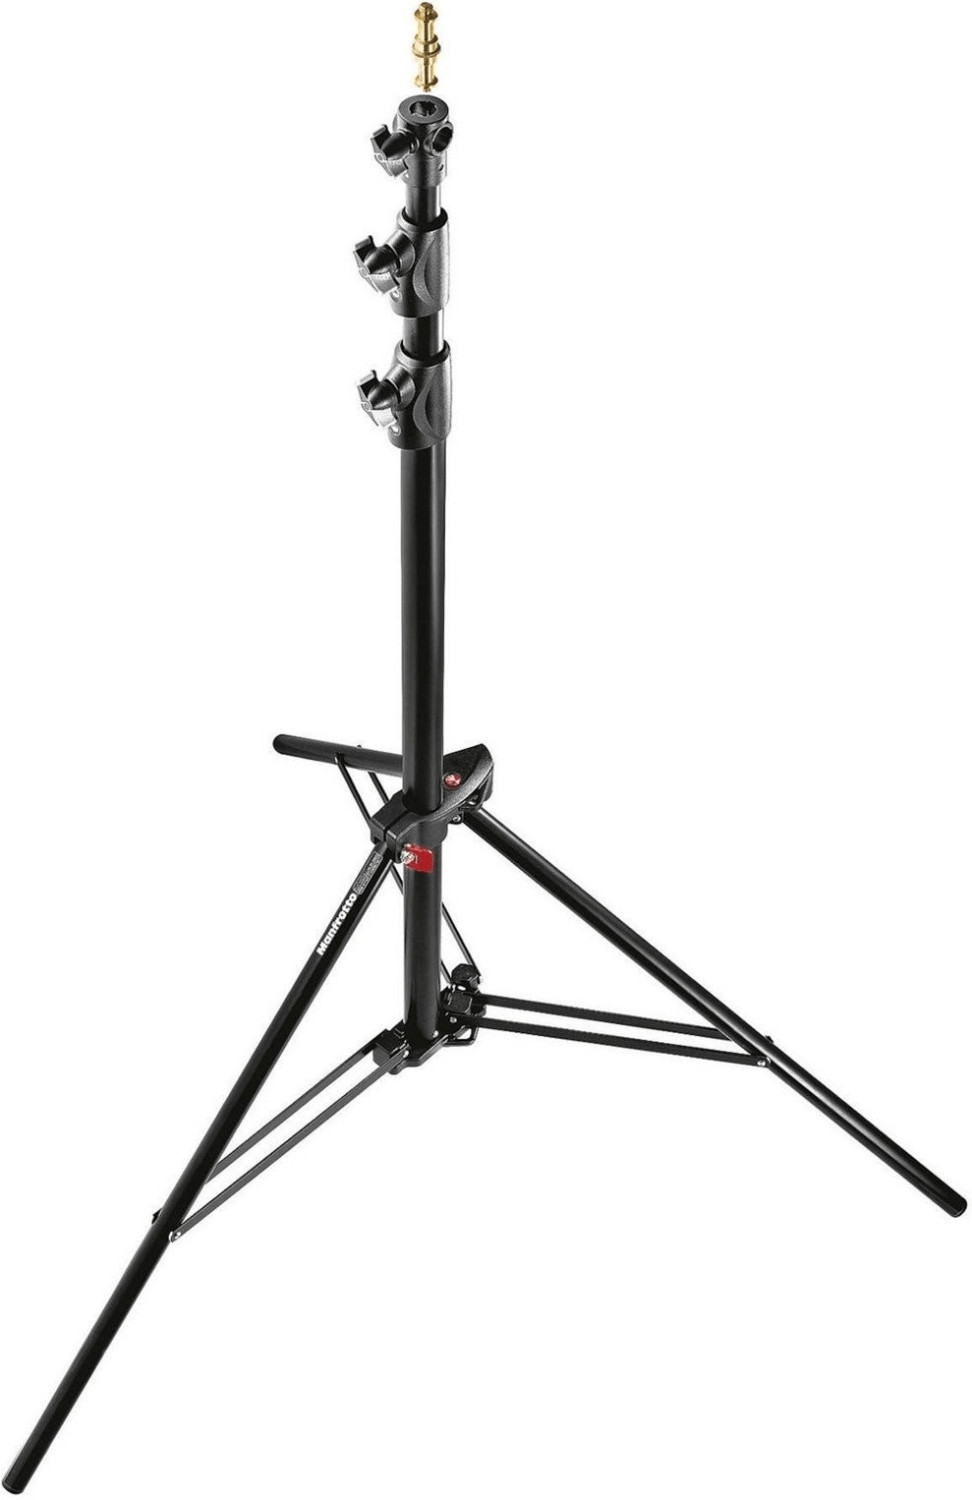 Image of Manfrotto 005B Ranker